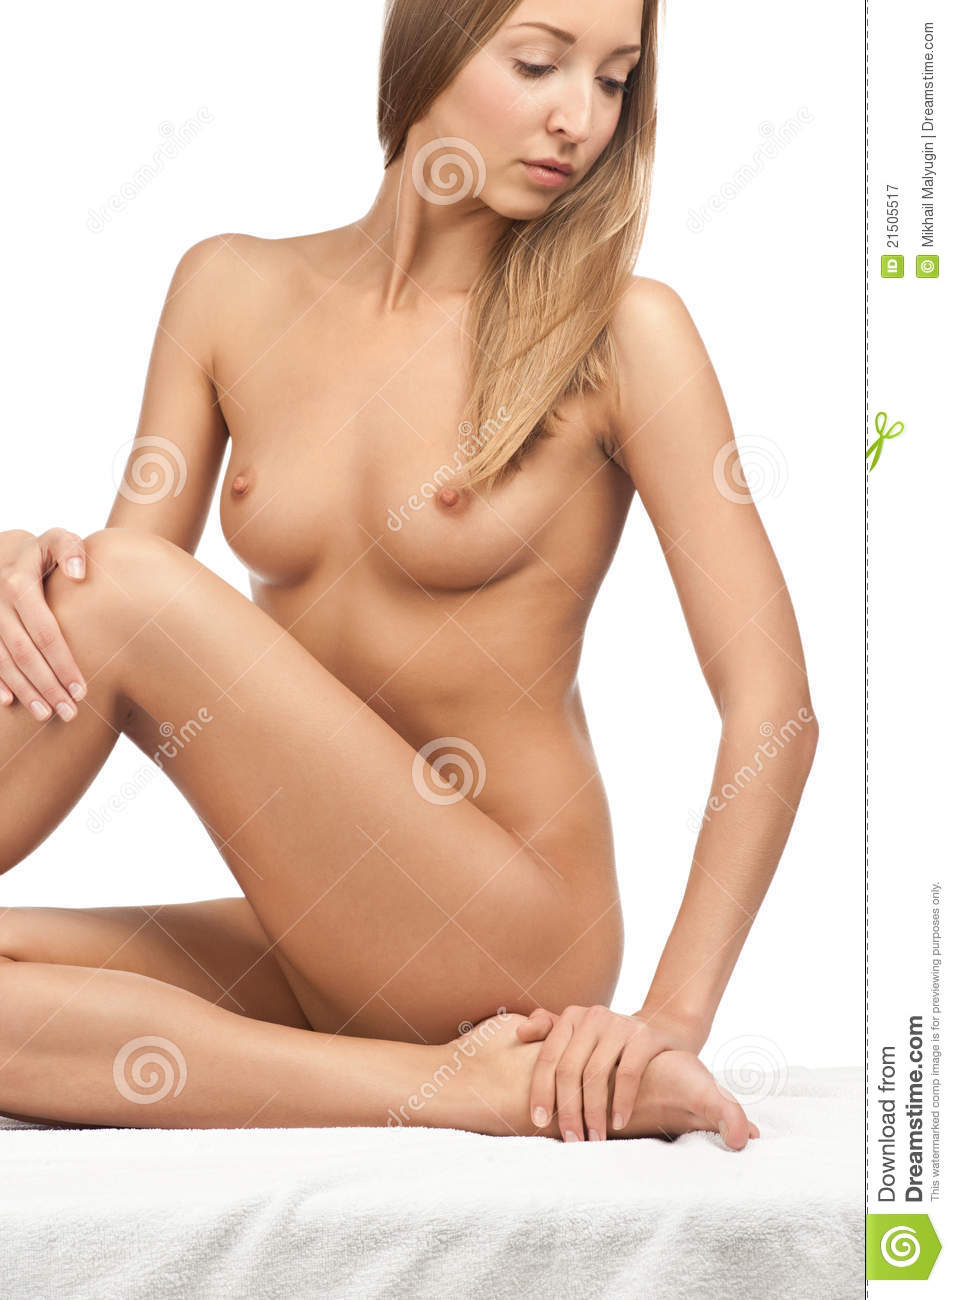 pictures of nude women body